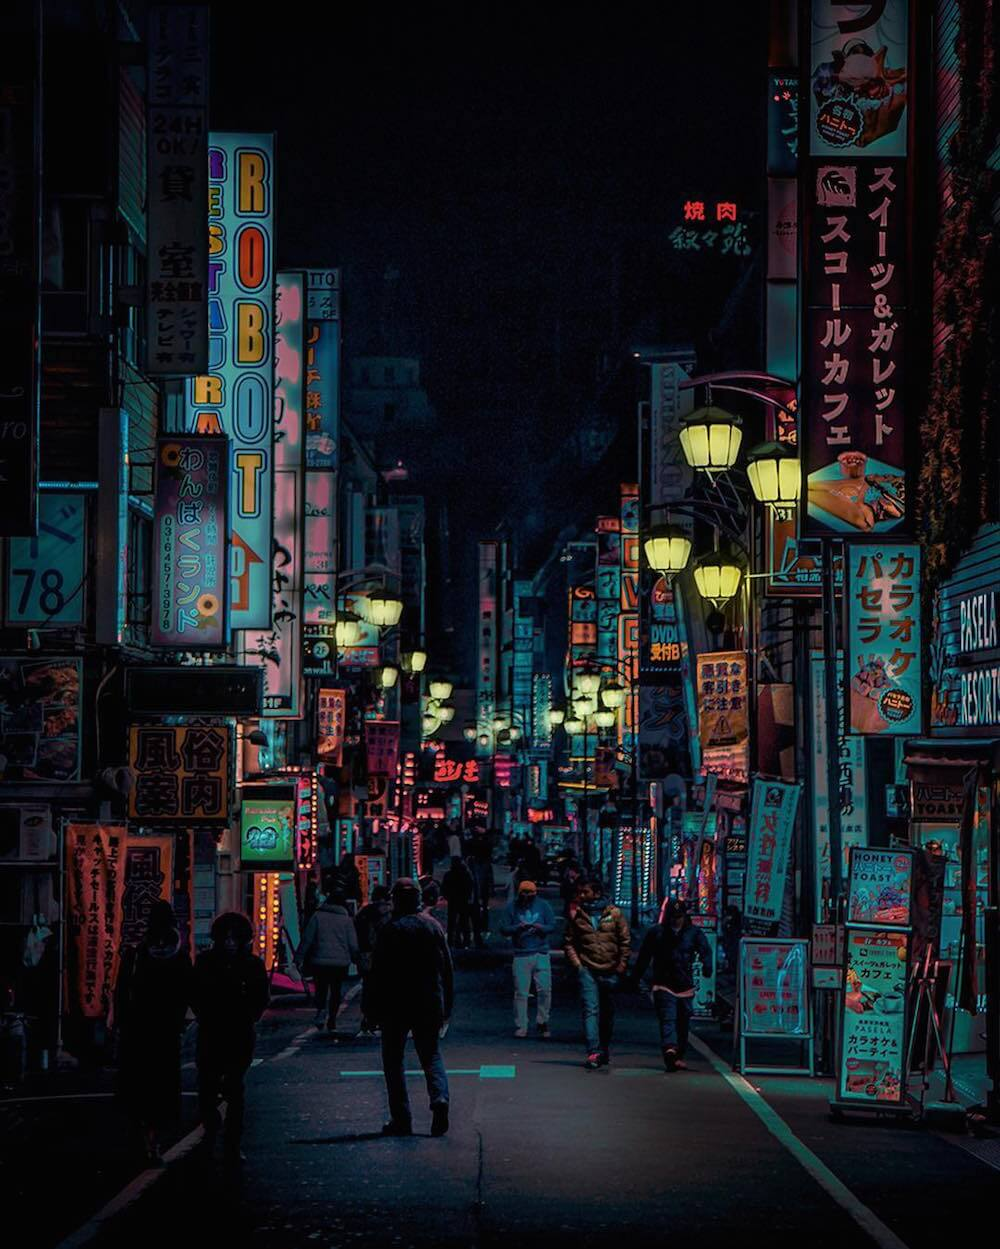 tokyos-night-life-liam-wong-freeyork-8